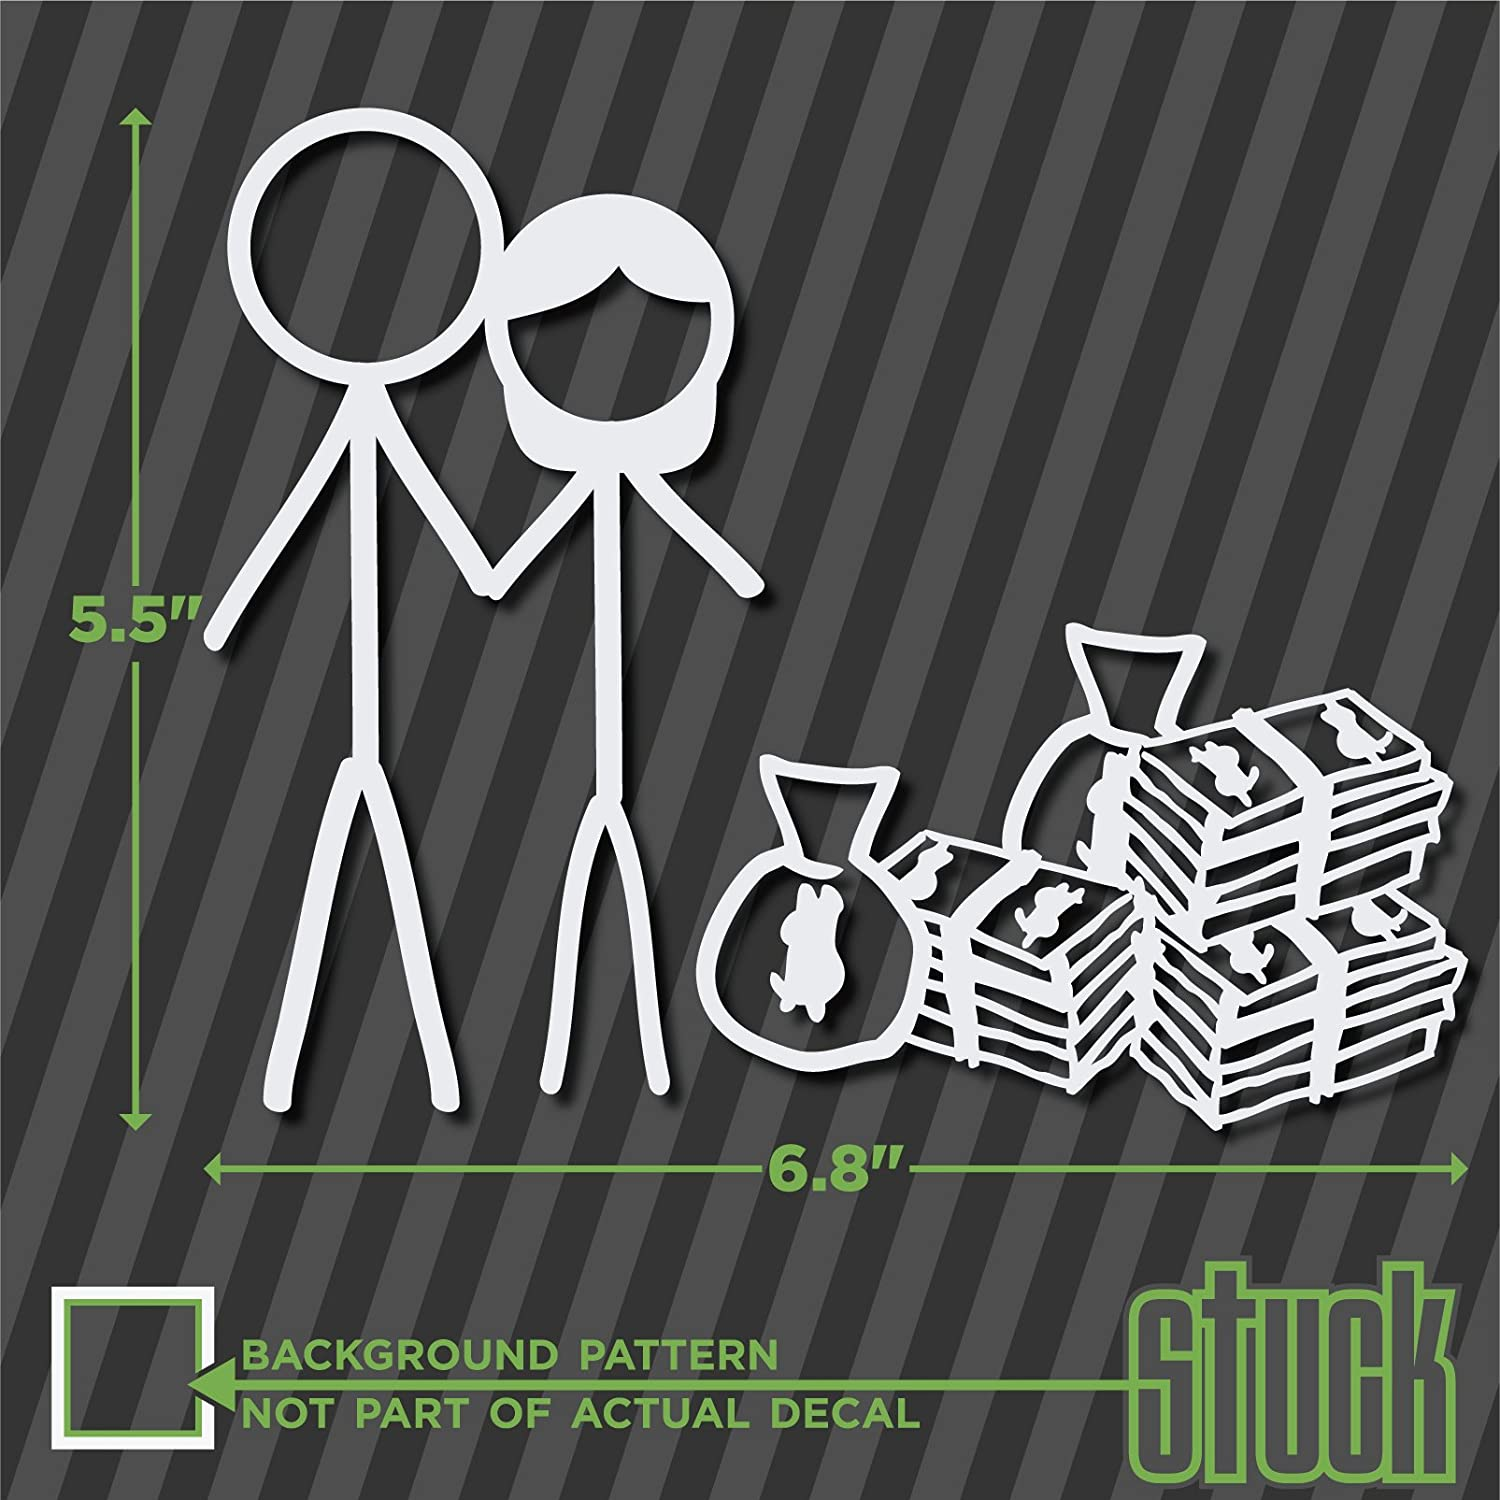 Amazoncom Stick Figure Couple With Money X Vinyl - Vinyl decals for your caramazoncom your stick family was delicious trex vinyl decal